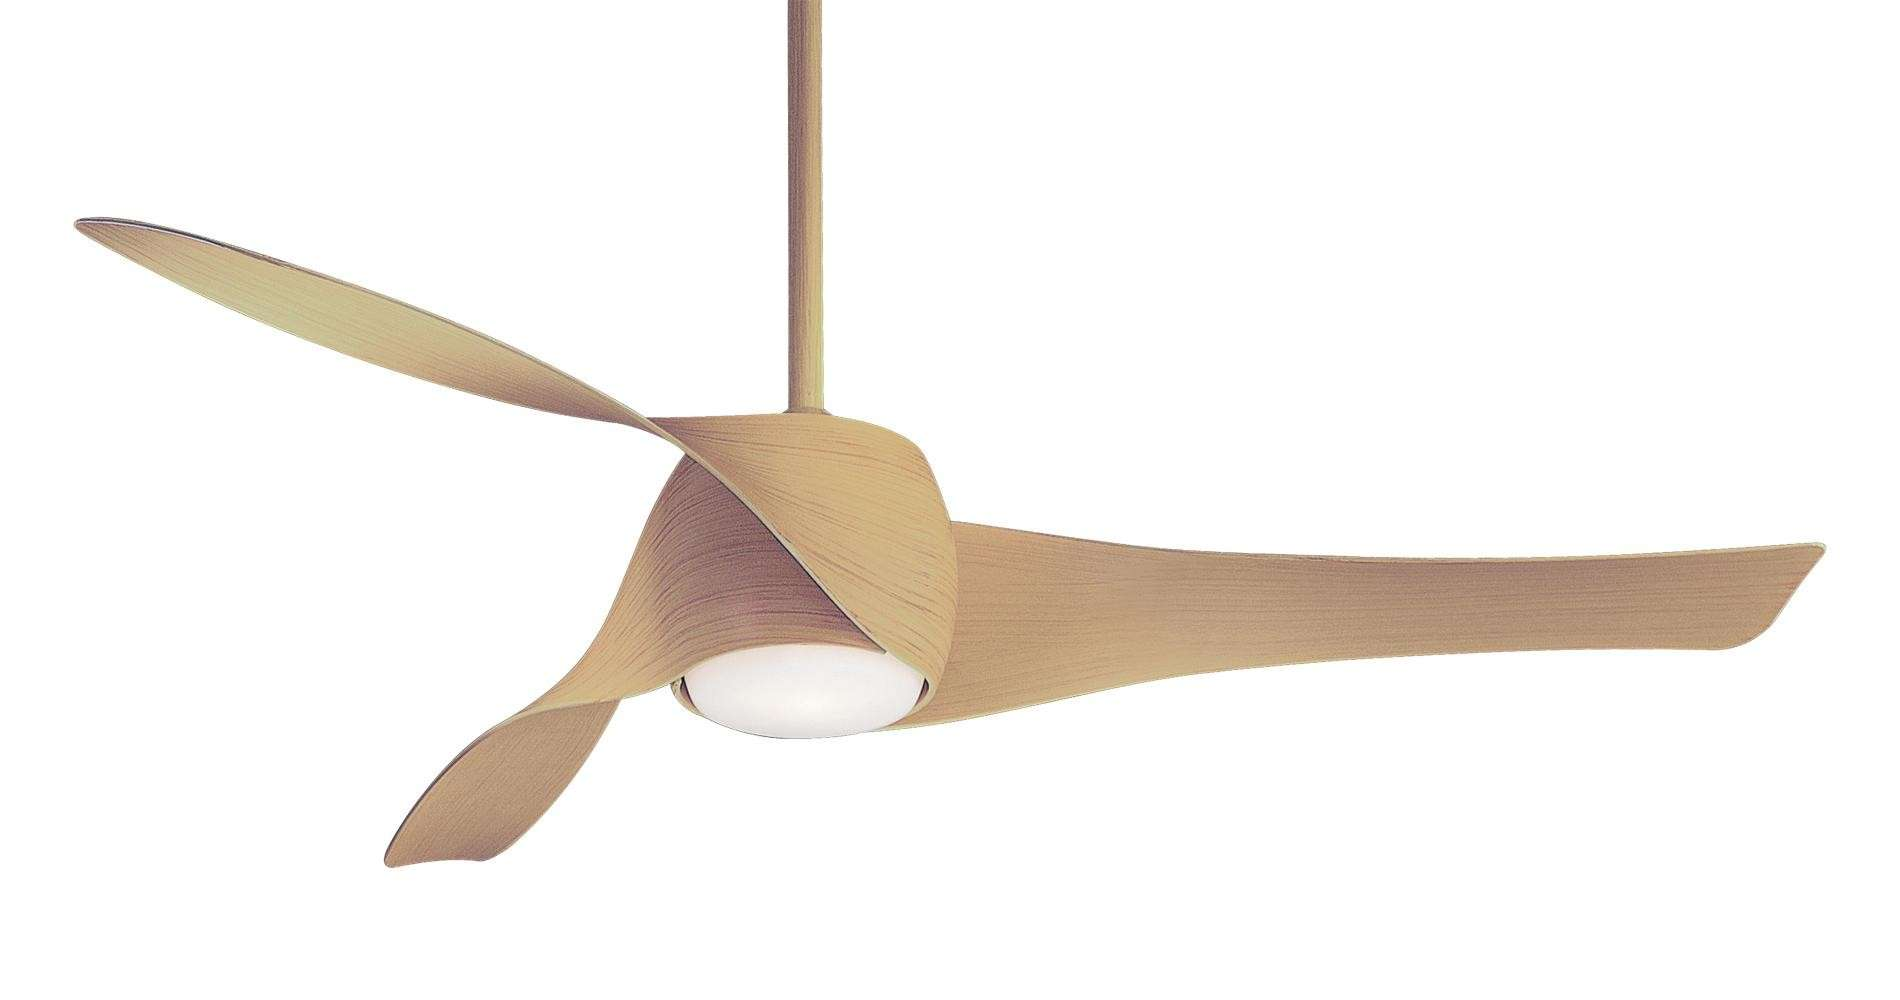 Minka Aire Artemis LED Ceiling Fan Model F803DL-MP in Maple